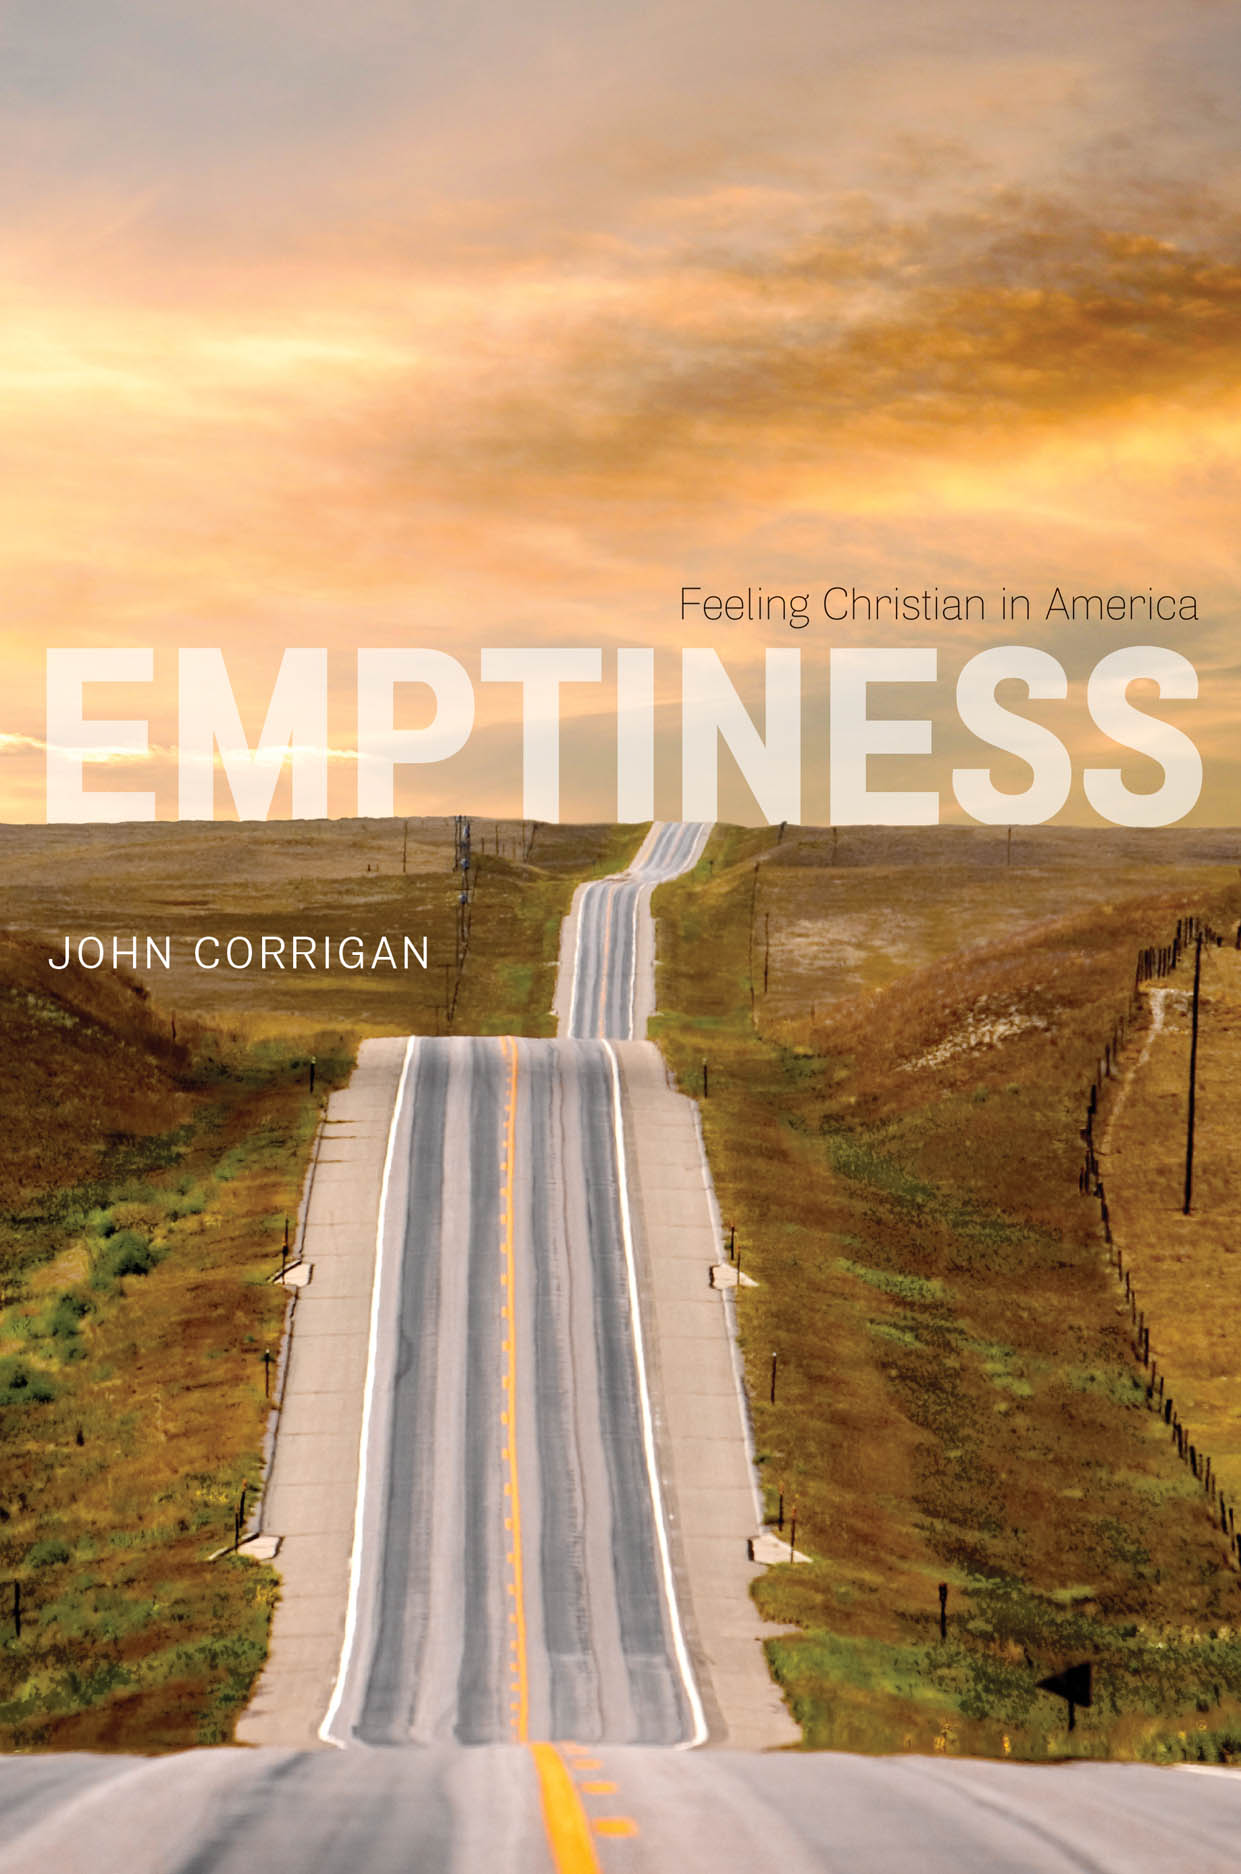 Emptiness: Feeling Christian in America